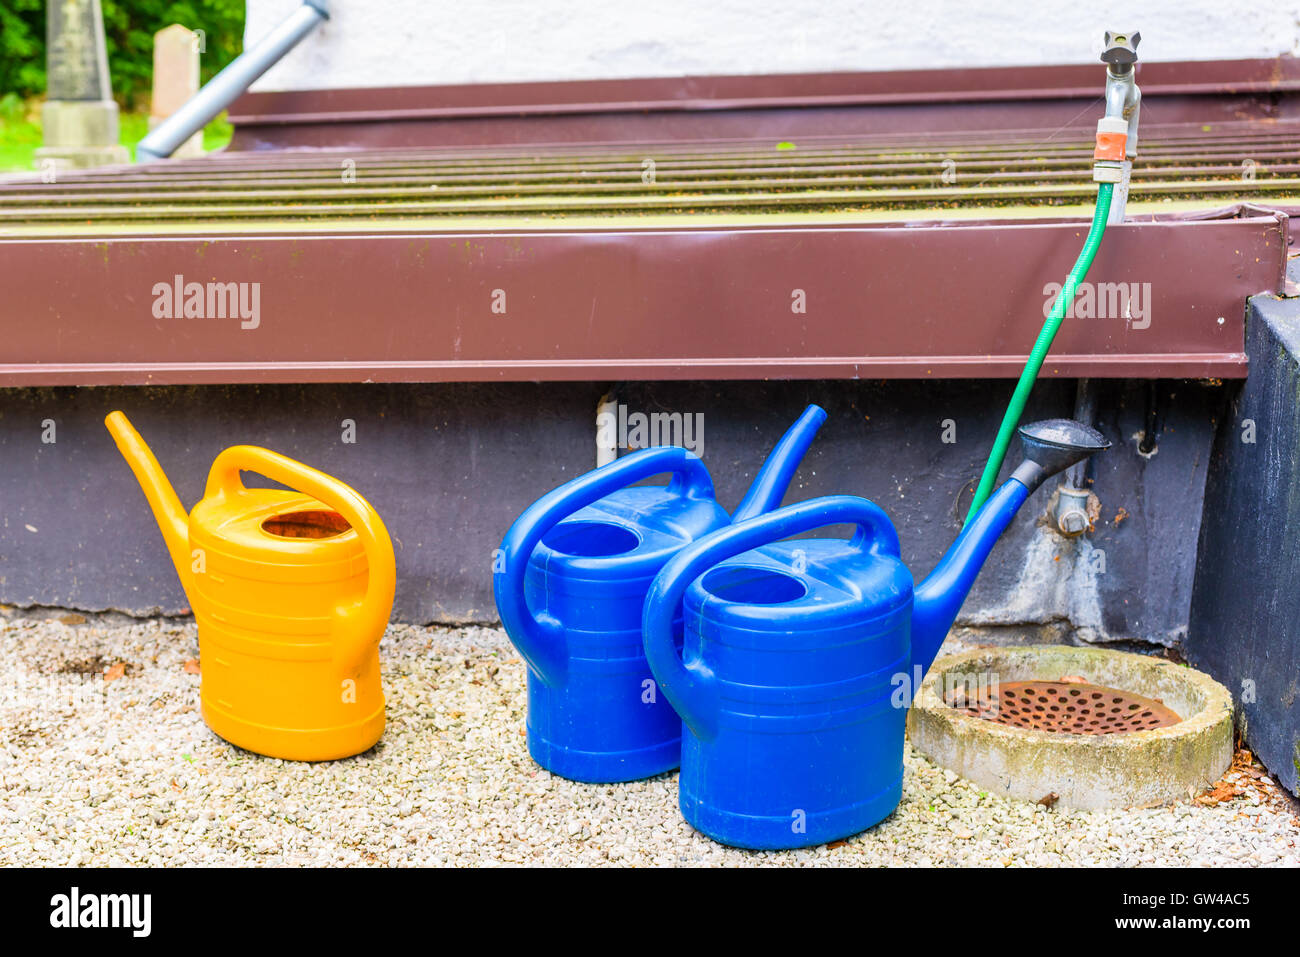 Three plastic watering cans and a garden hose. Stock Photo